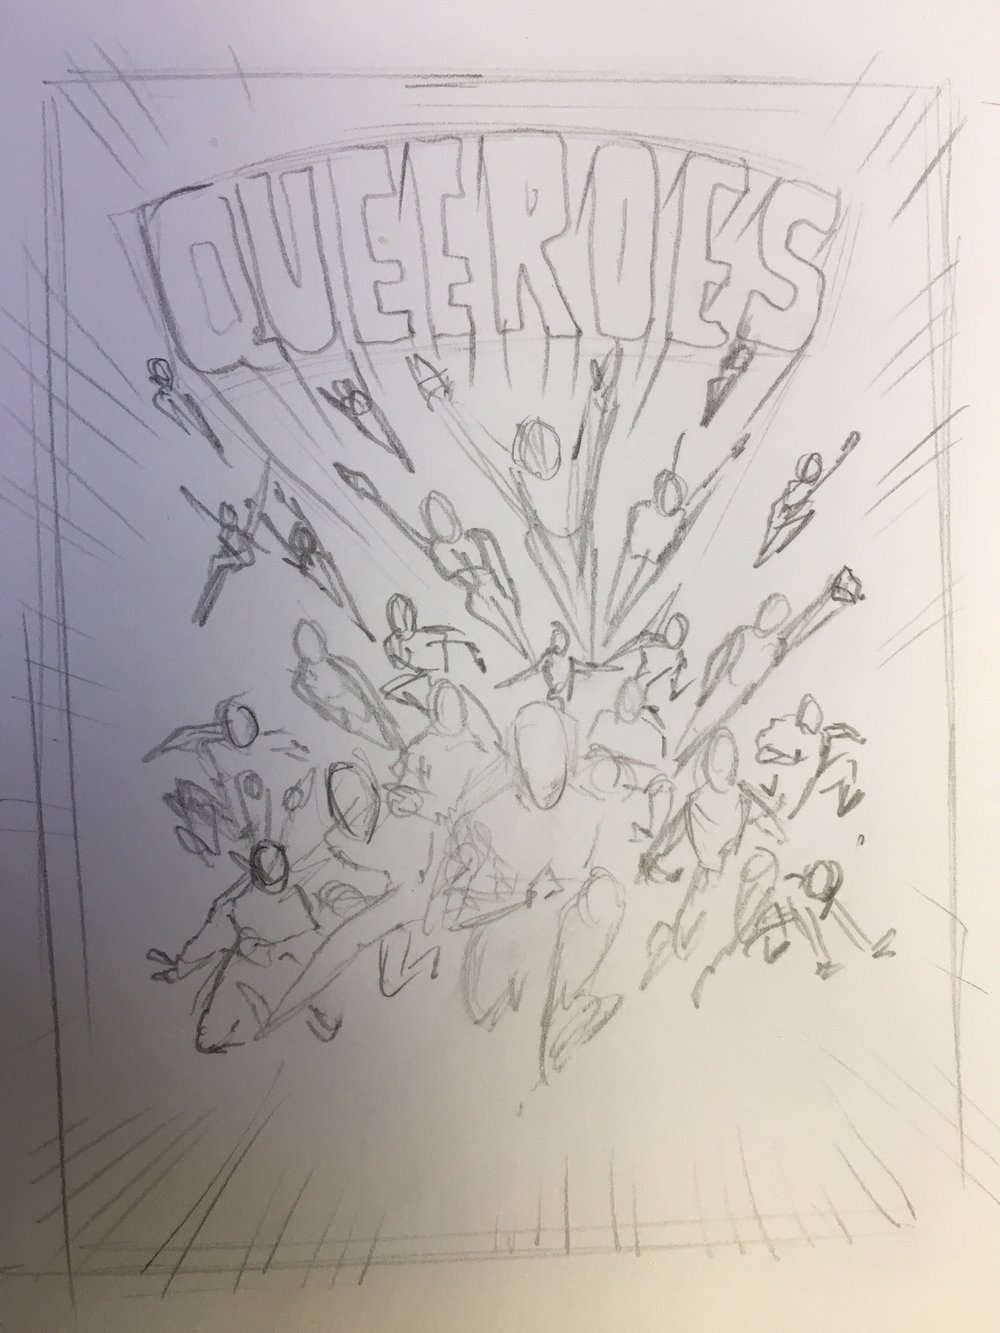 queeroes-thumbs.jpg